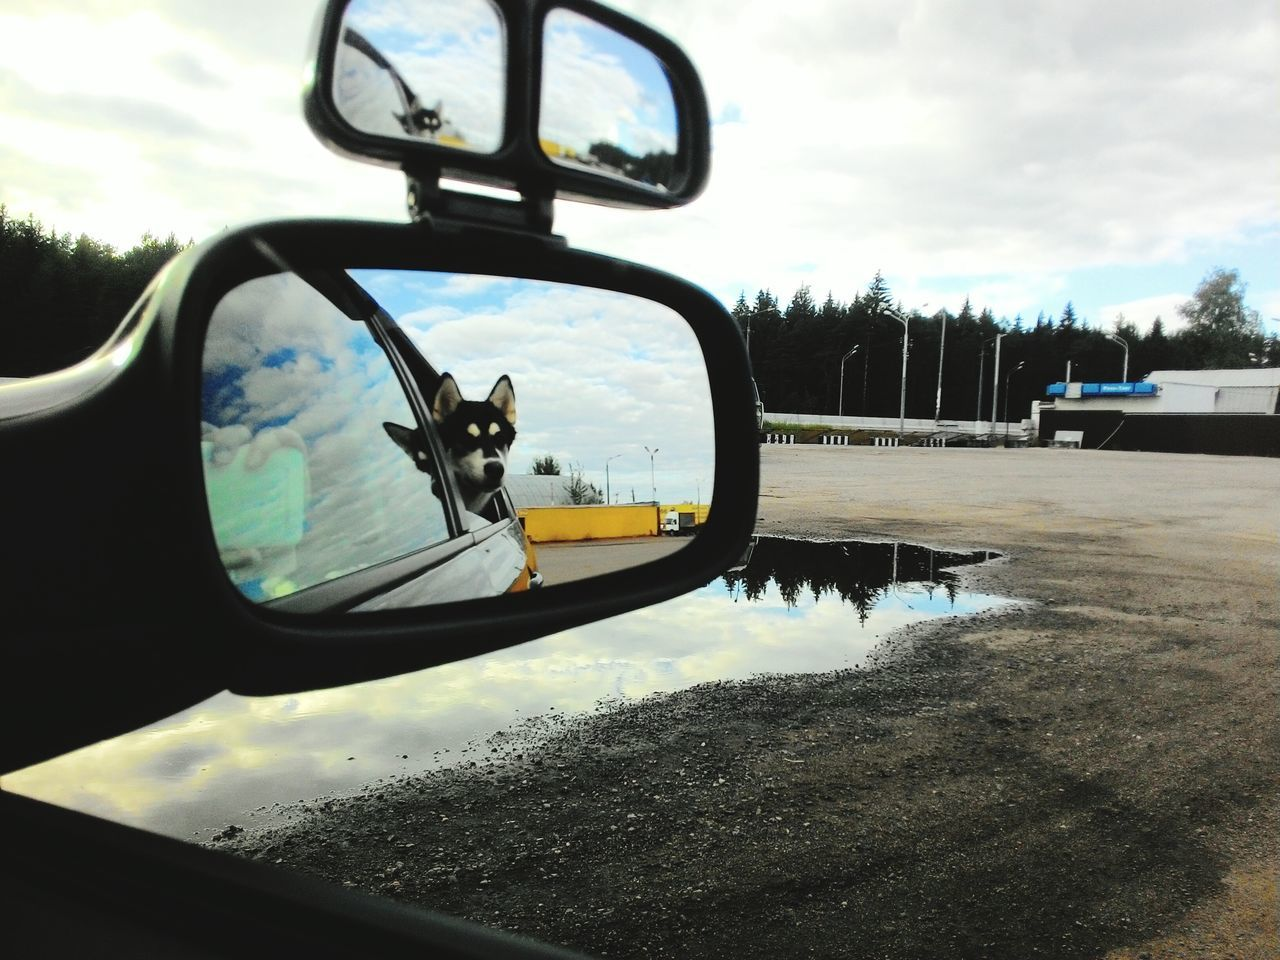 Dog animal Husky Car Travel Traveling Girl Dog Car Transportation Car Mode Of Transport Land Vehicle Reflection Side-view Mirror Street Road Cloud - Sky Sky Cloud Day Vehicle No People